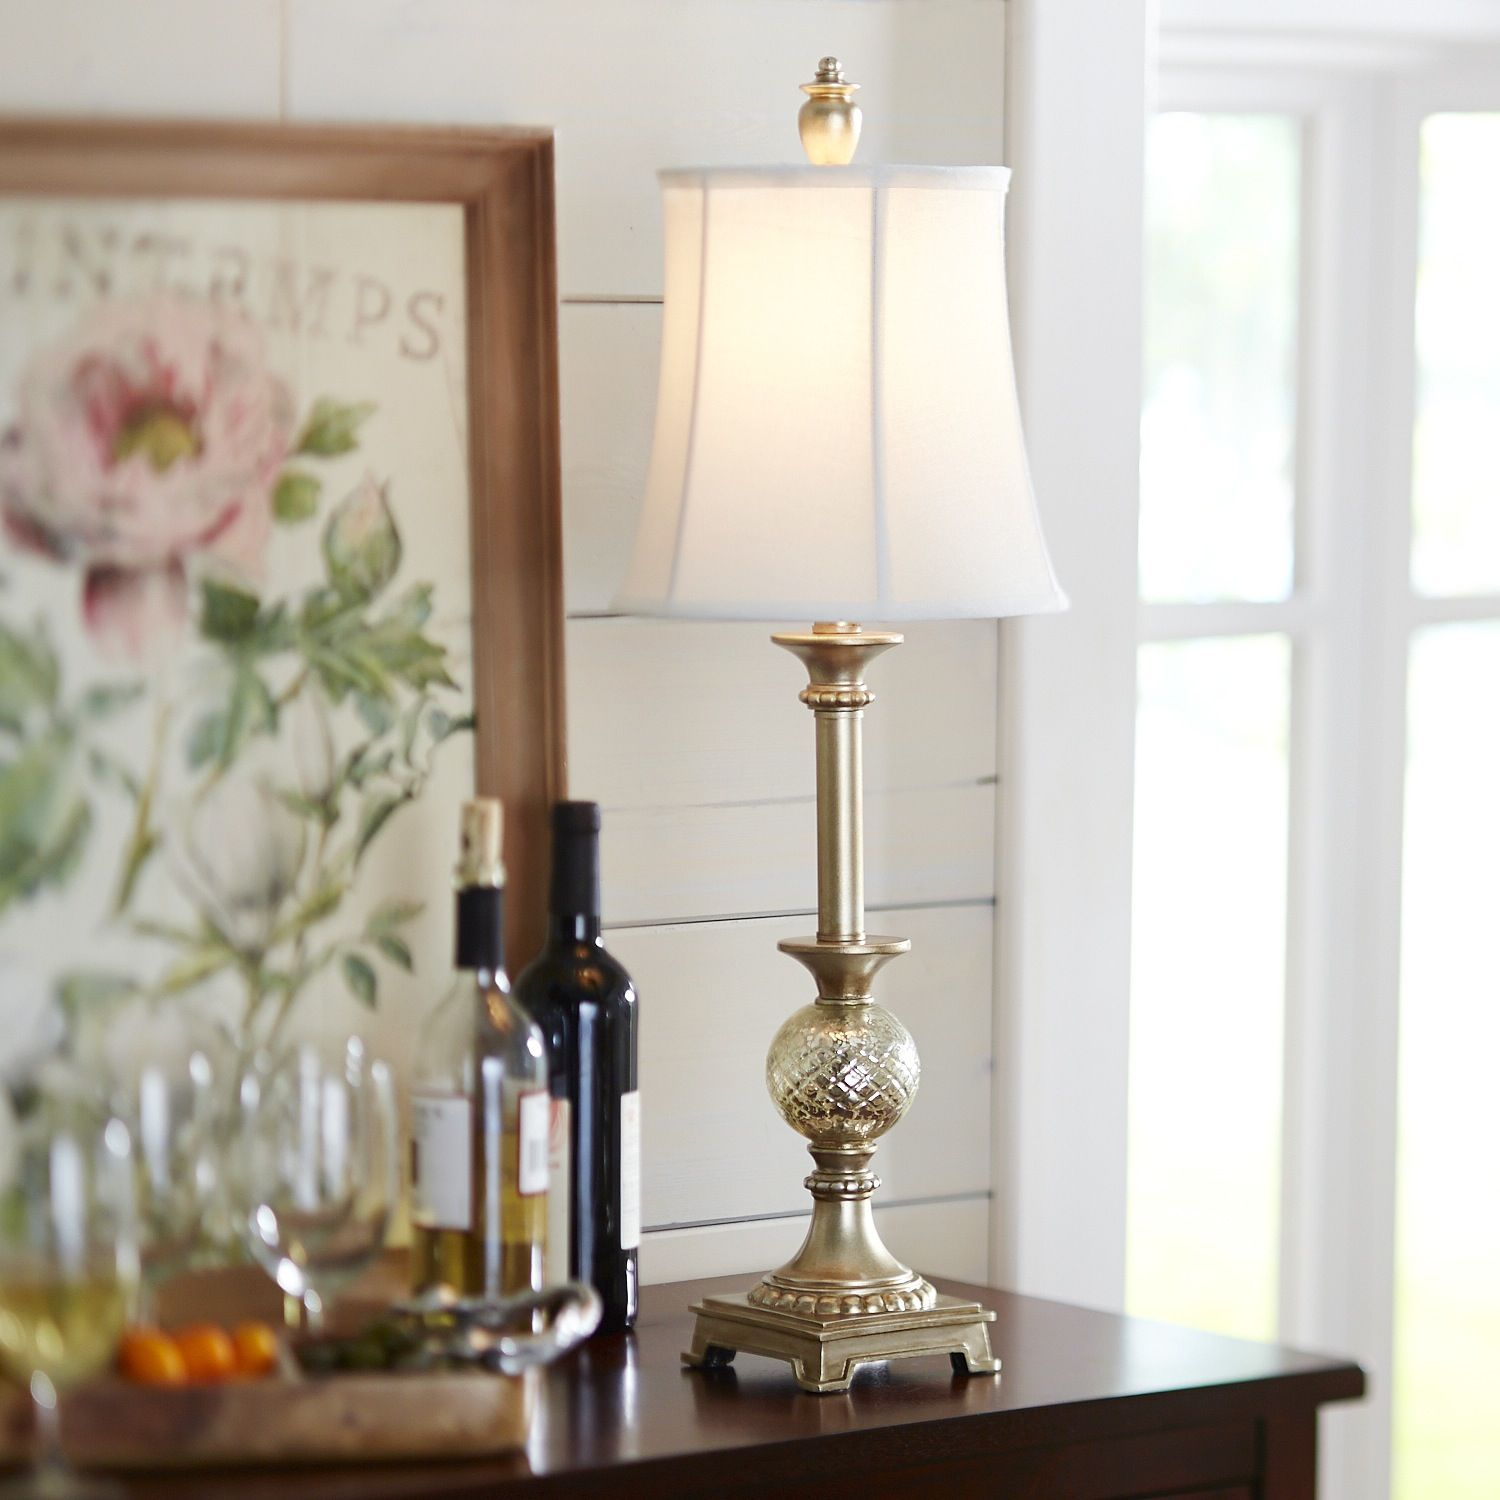 My new console light Shimmer Buffet Lamp Pier 1 Imports My